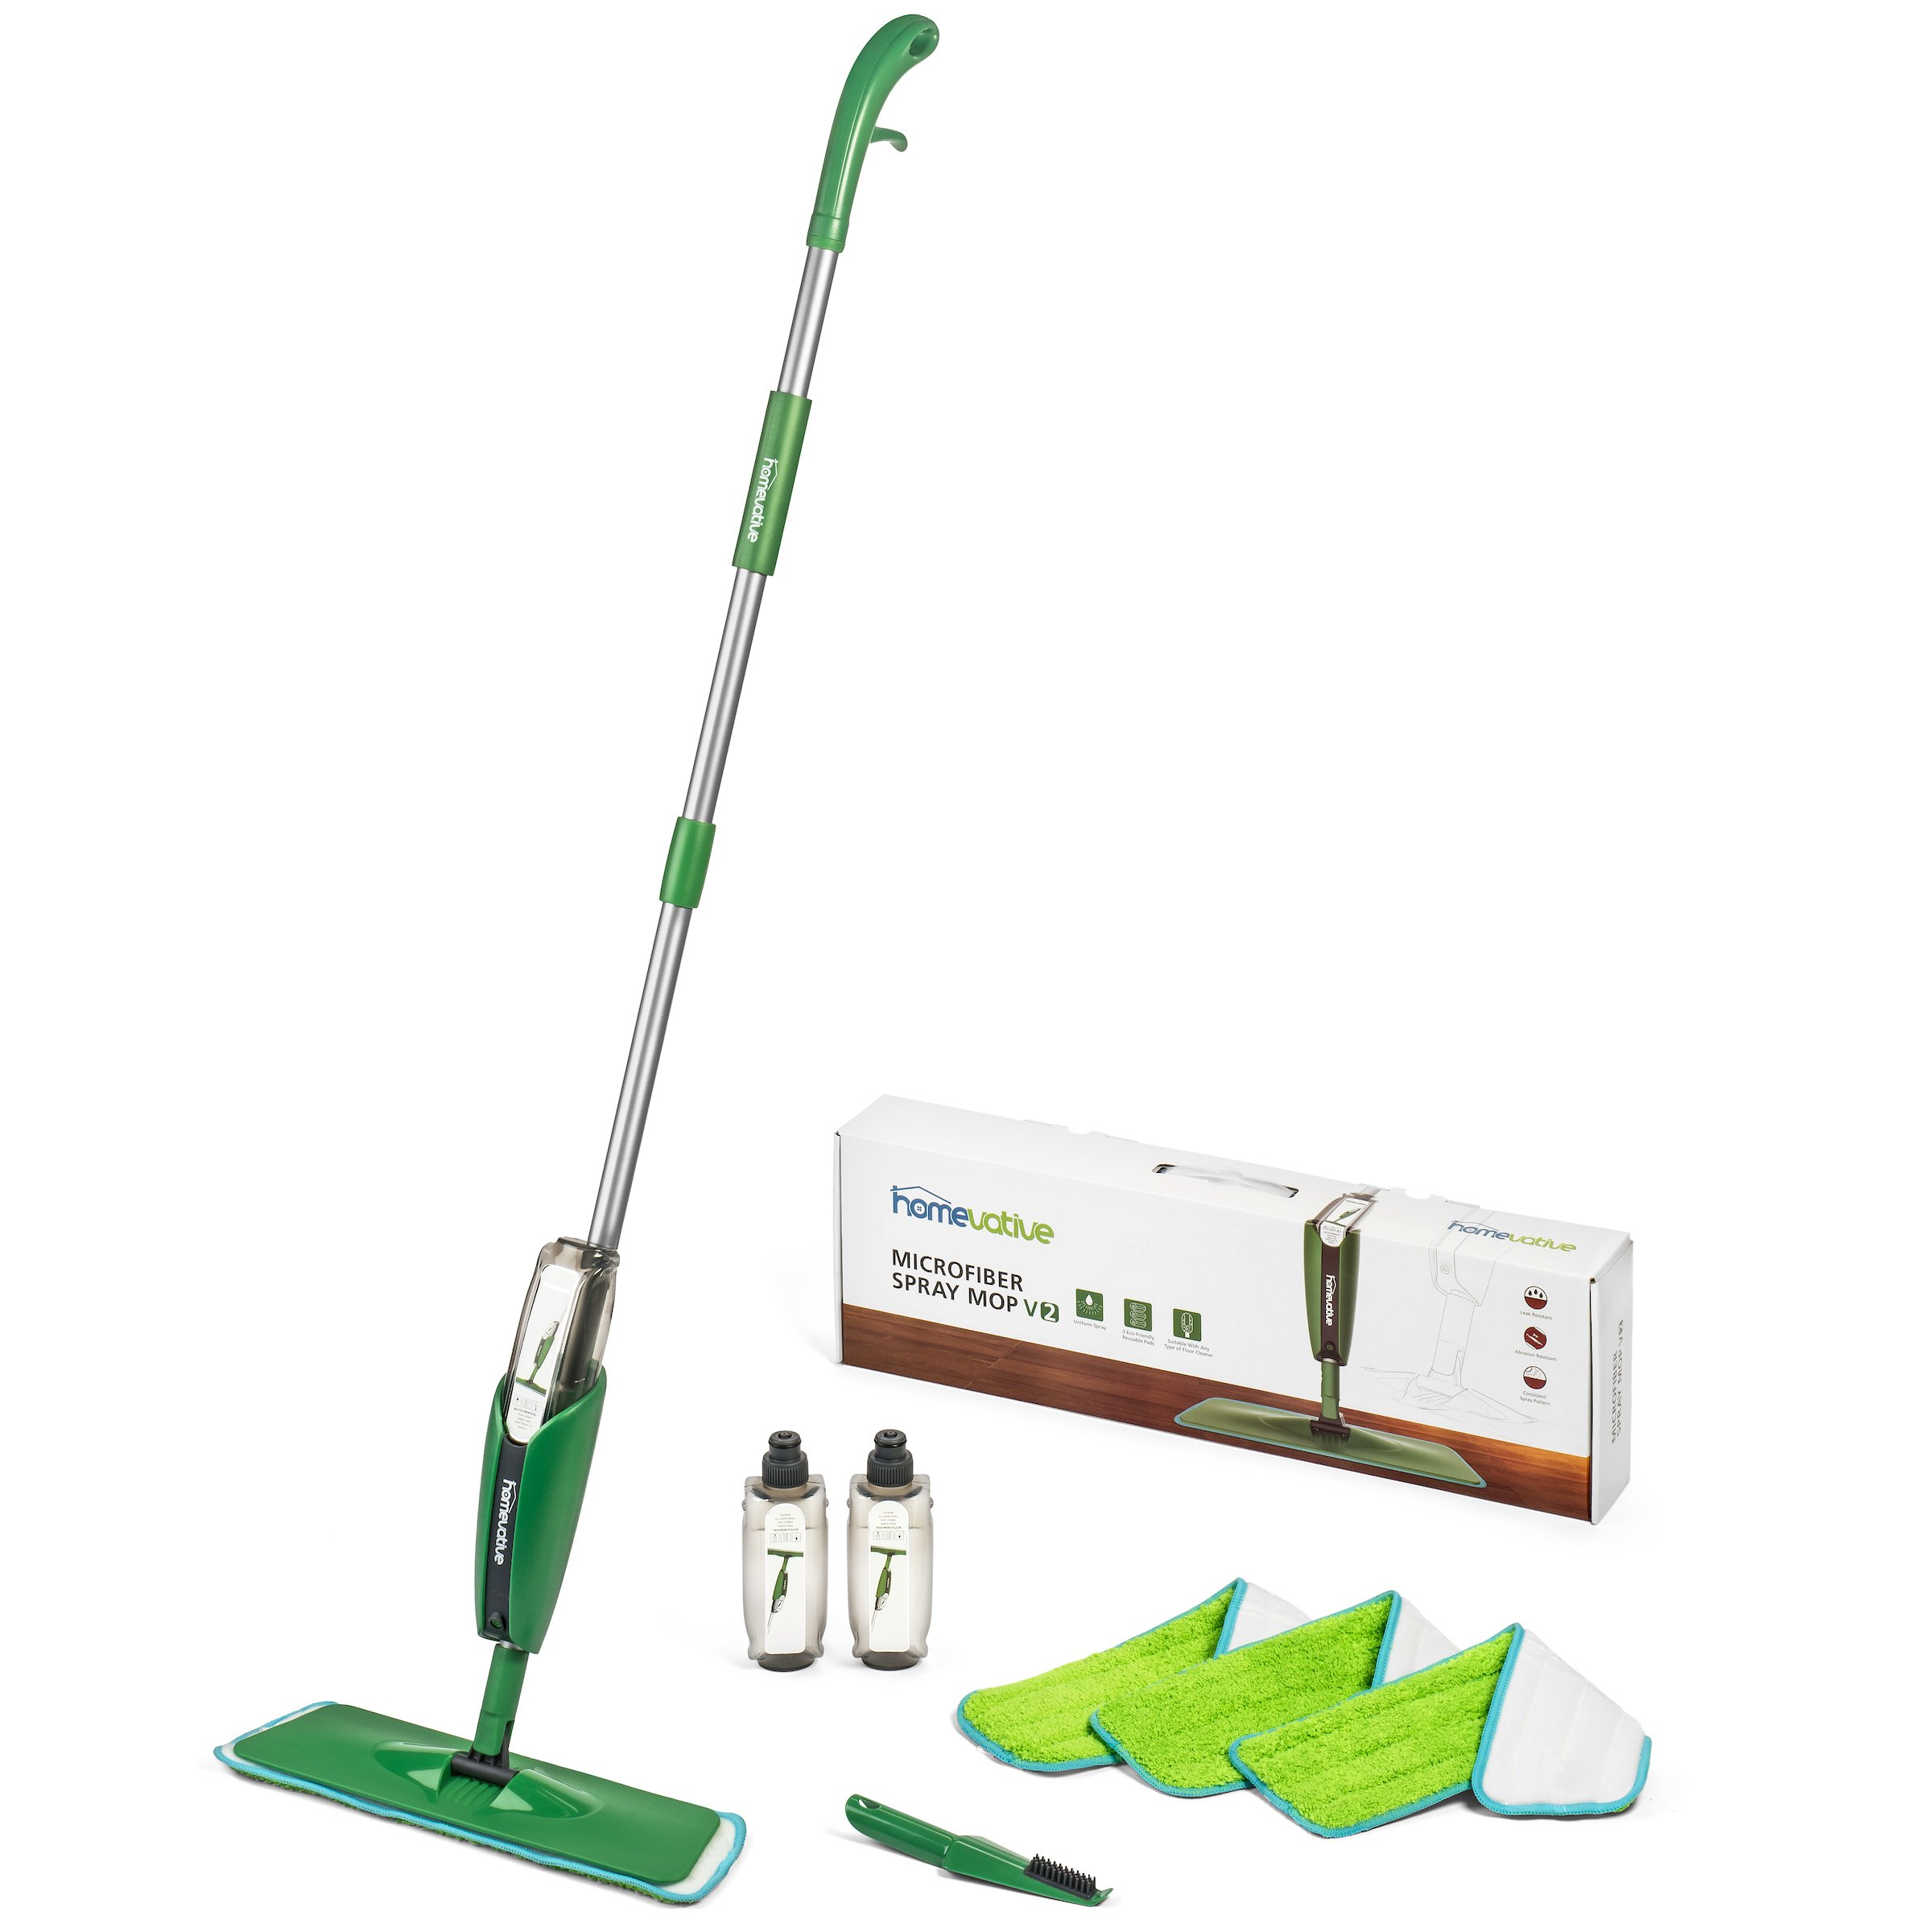 Homevative Microfiber Spray Mop Kit /w 3 pads, 2 bottles, and Precision Detailer, Floor push mop for kitchen, bathroom, by Homevative